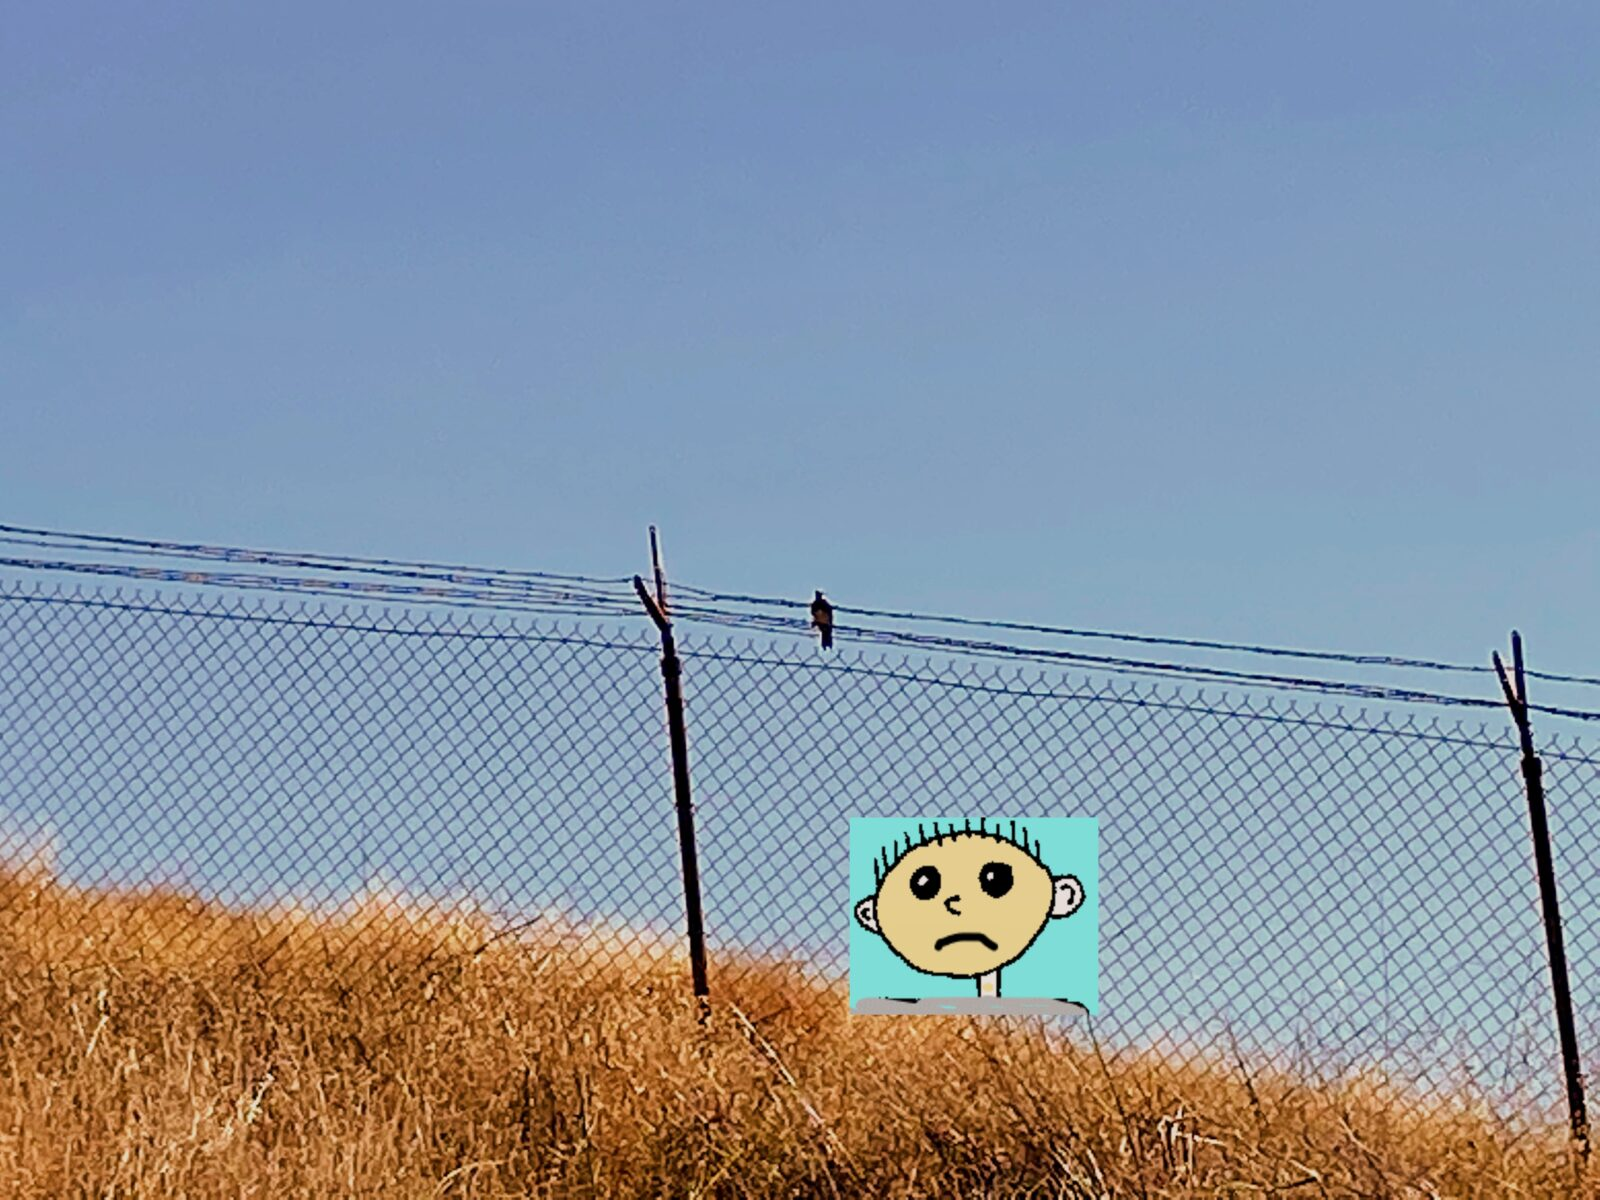 Hash Boy in fence